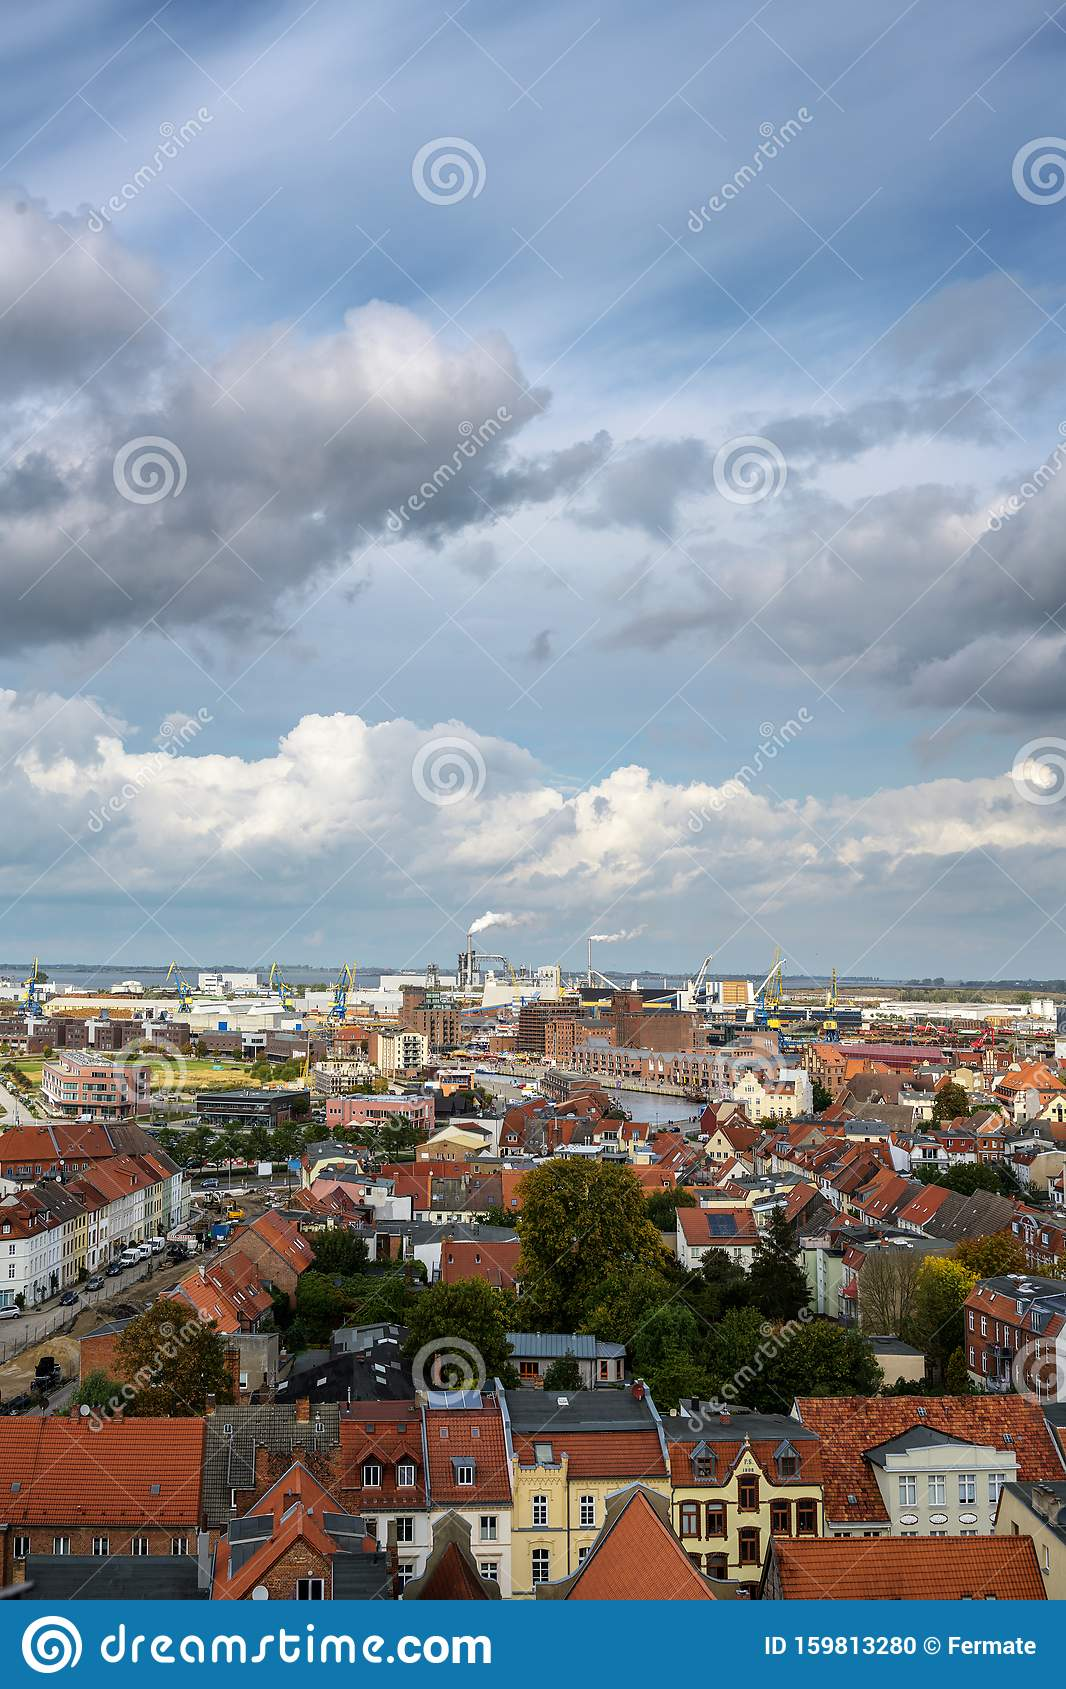 High Above The Clouds Aerial View Royalty-Free Stock ...